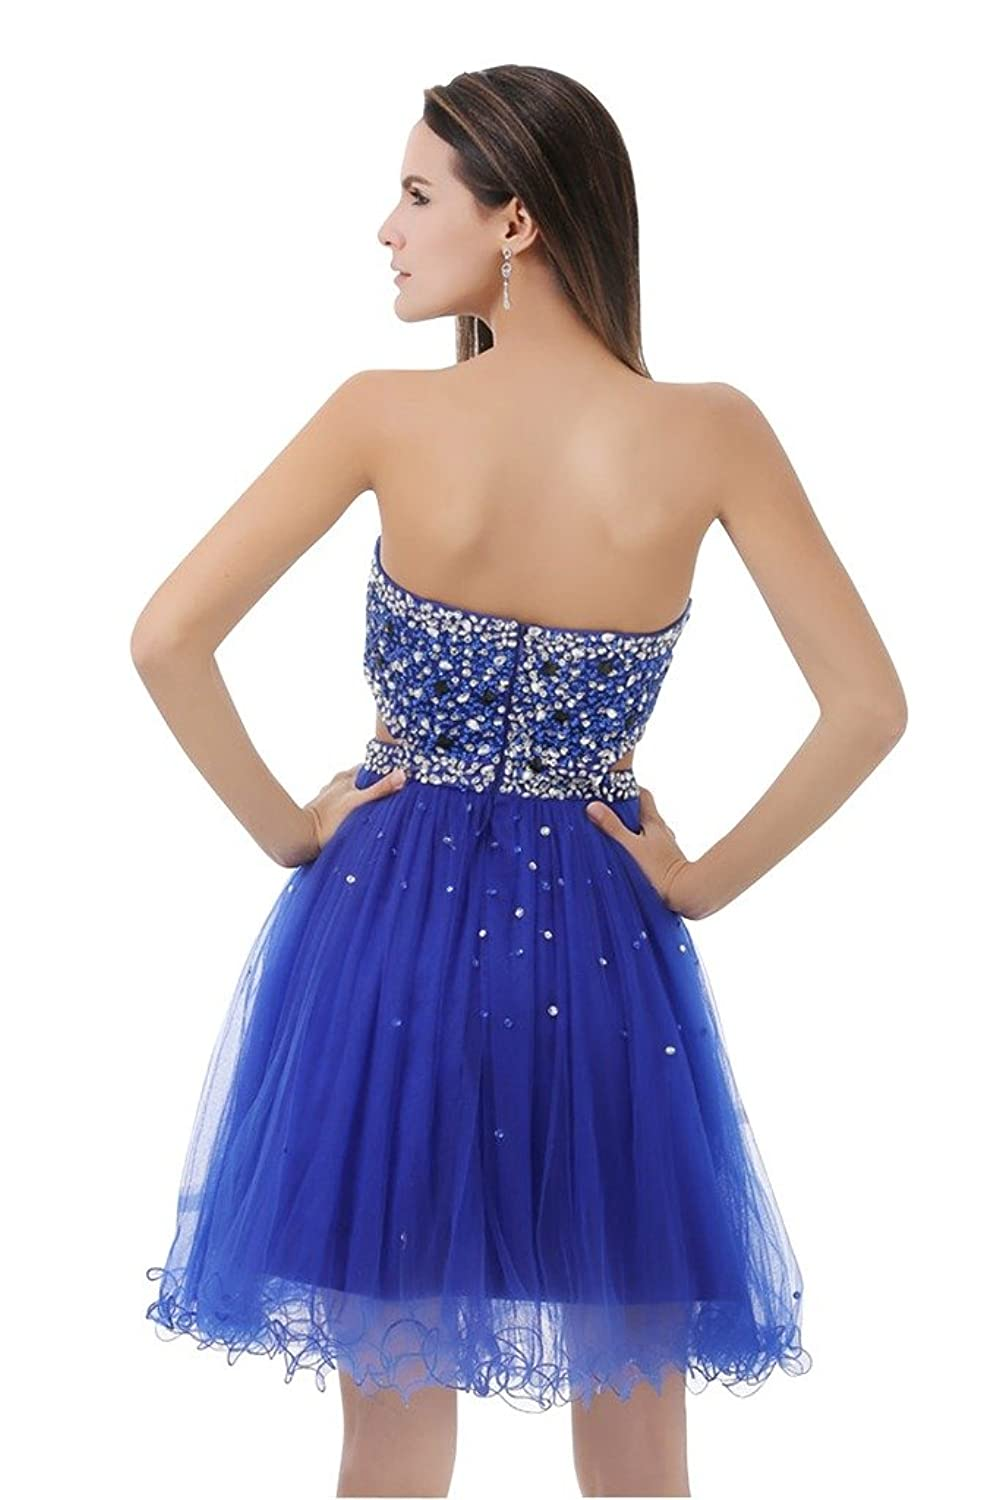 Sunvary Rhinestones Sweetheart Neckline Short Cocktail Dresses Homecoming Gowns